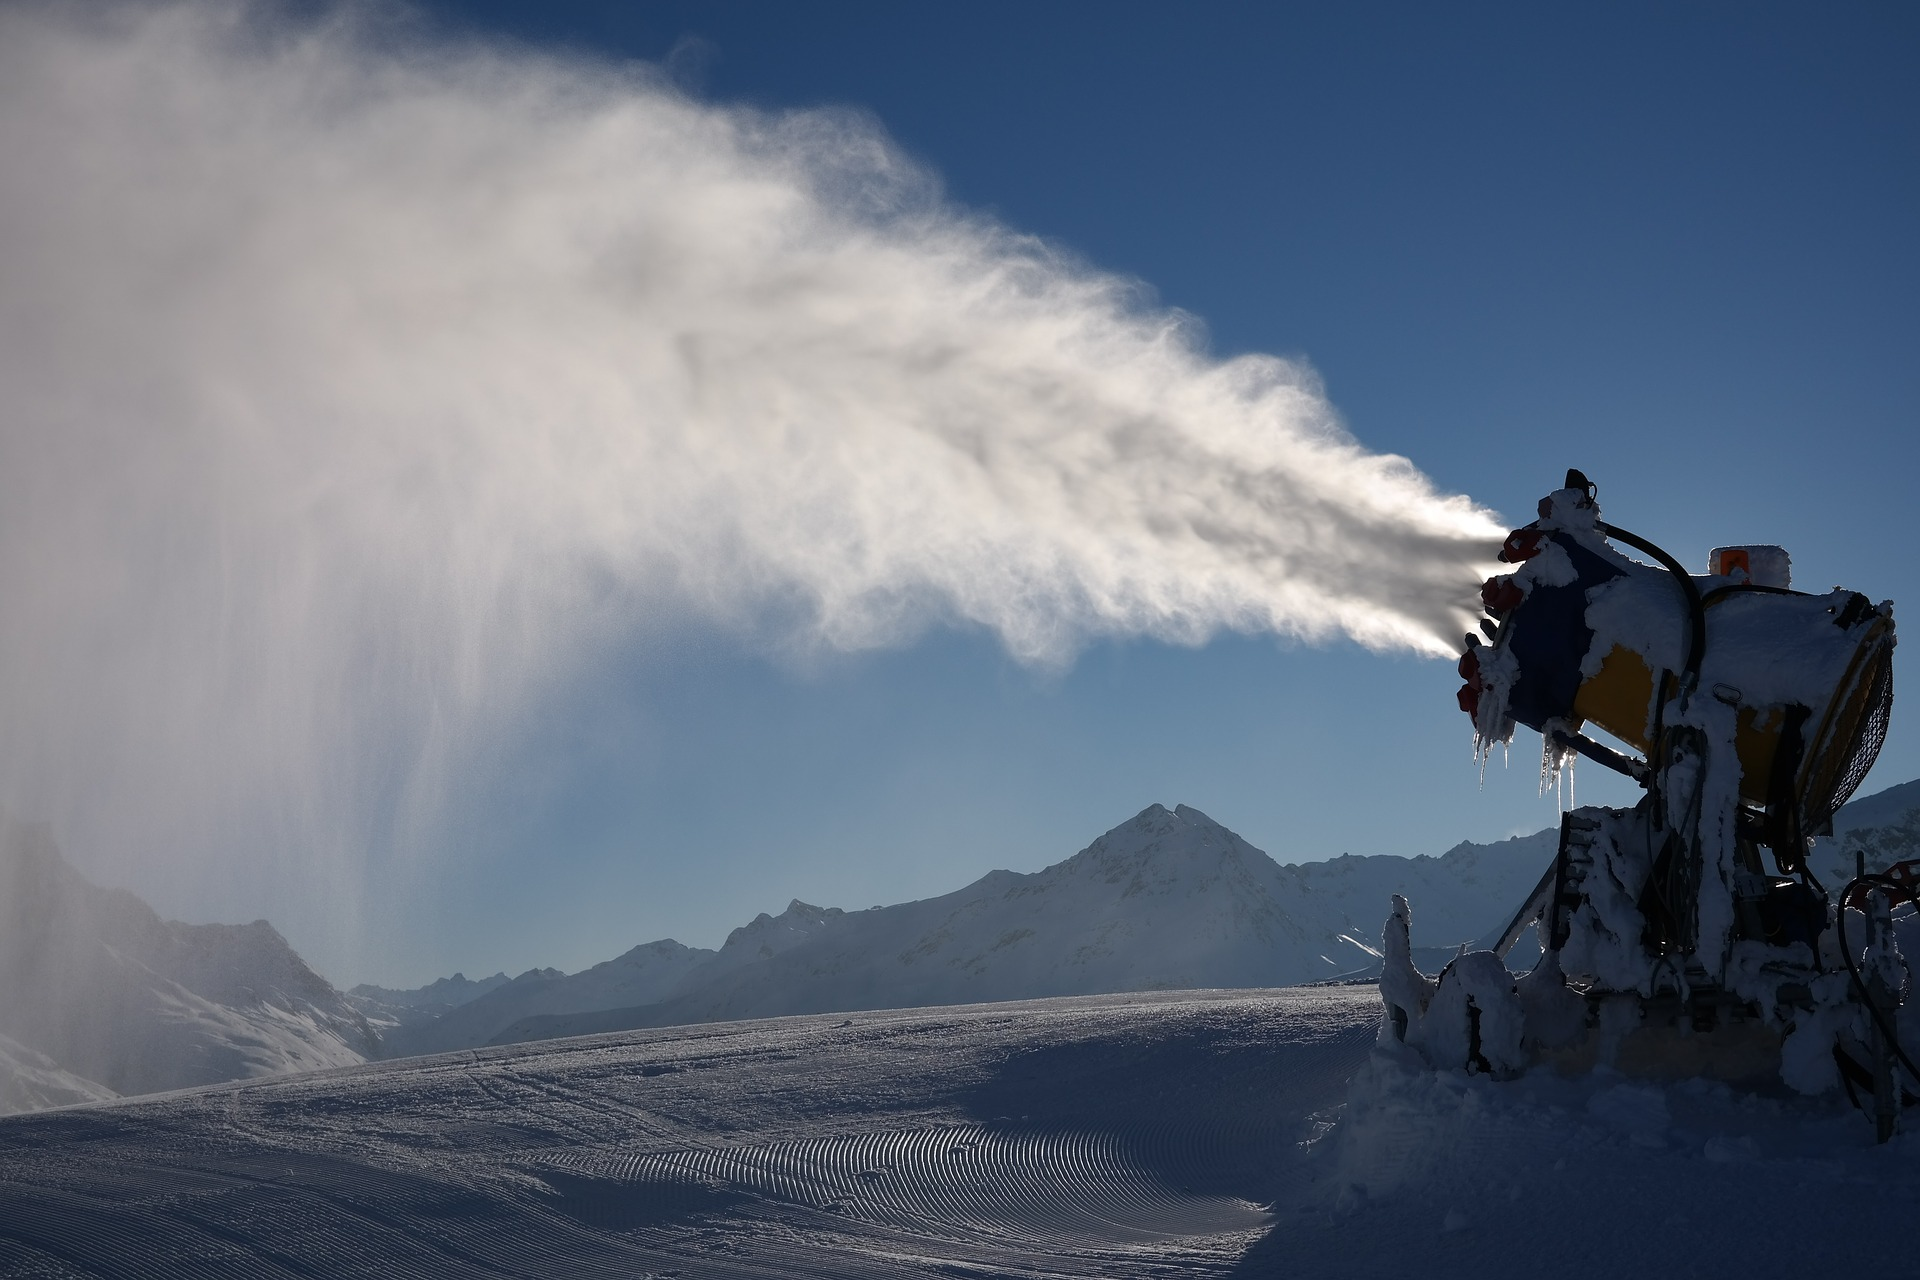 snow-cannon-999283_1920